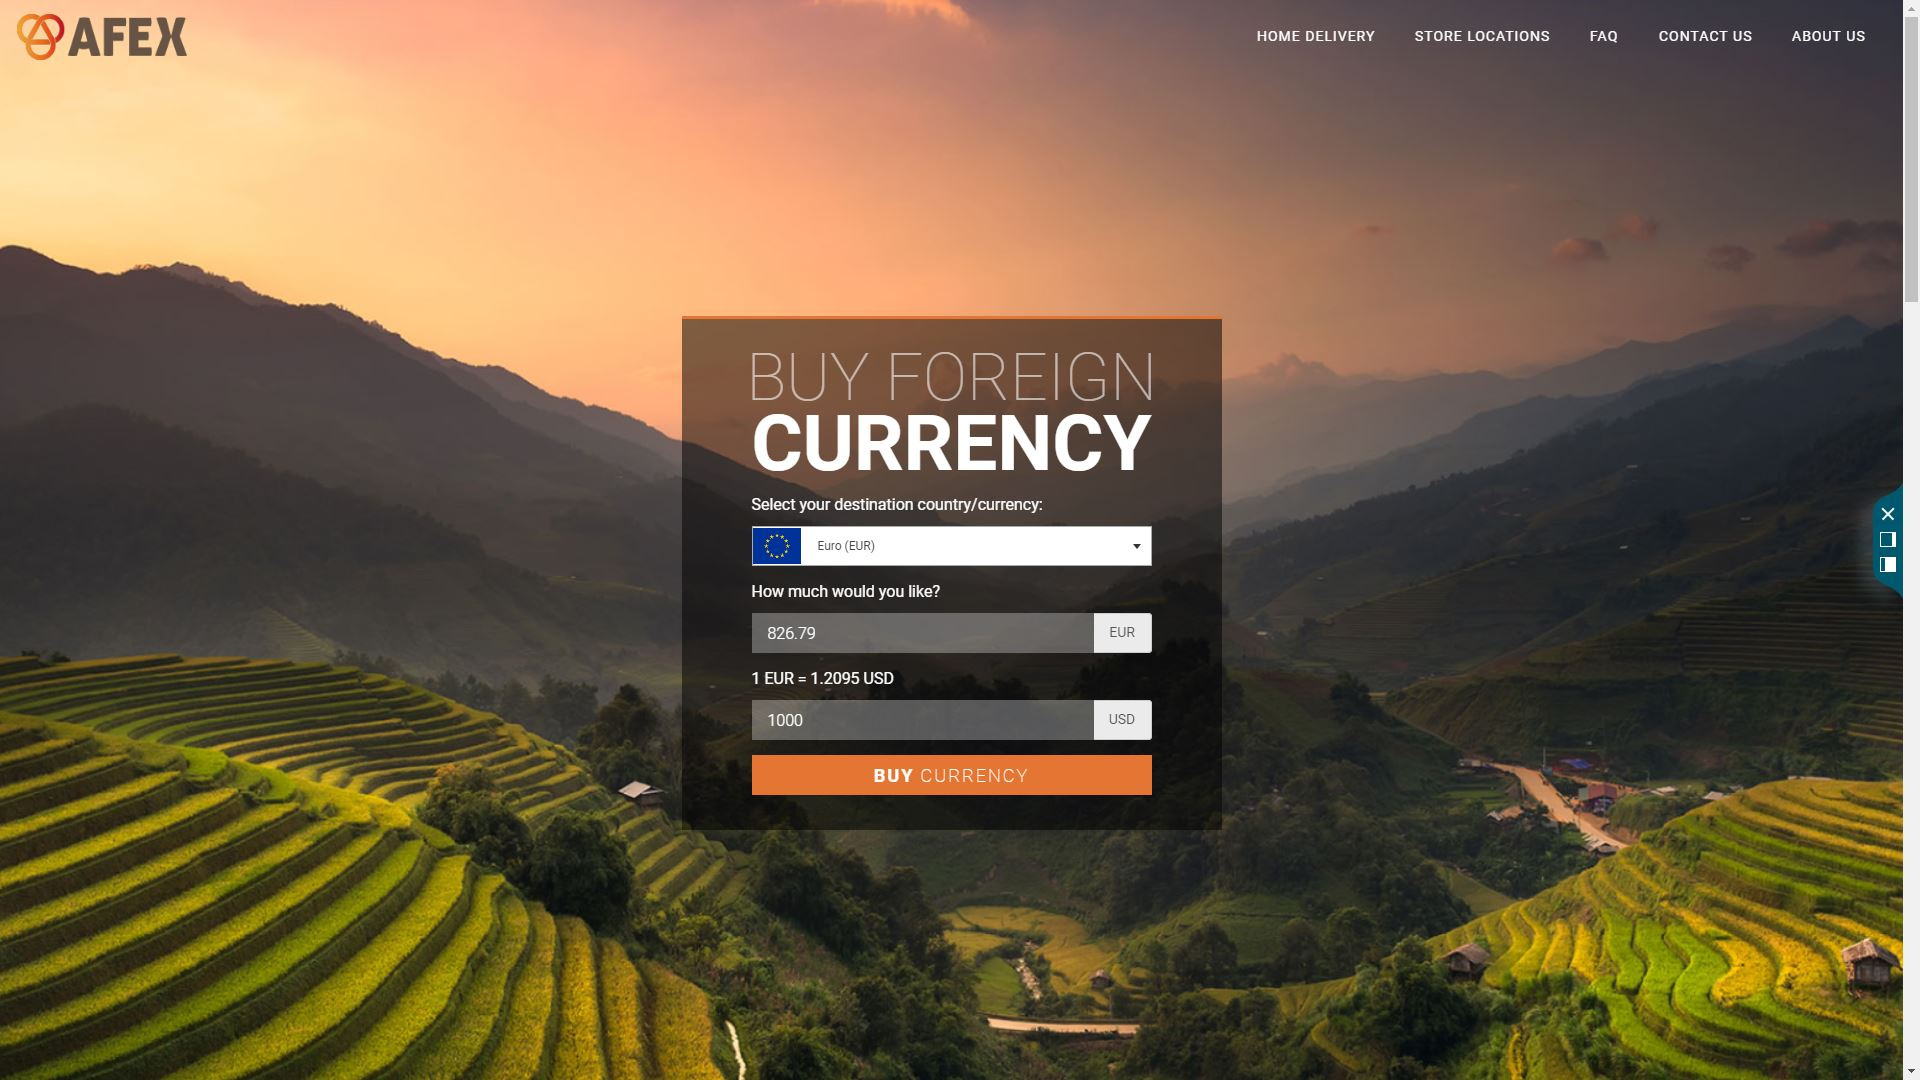 AFEX Launches Home Delivery of Foreign Currency